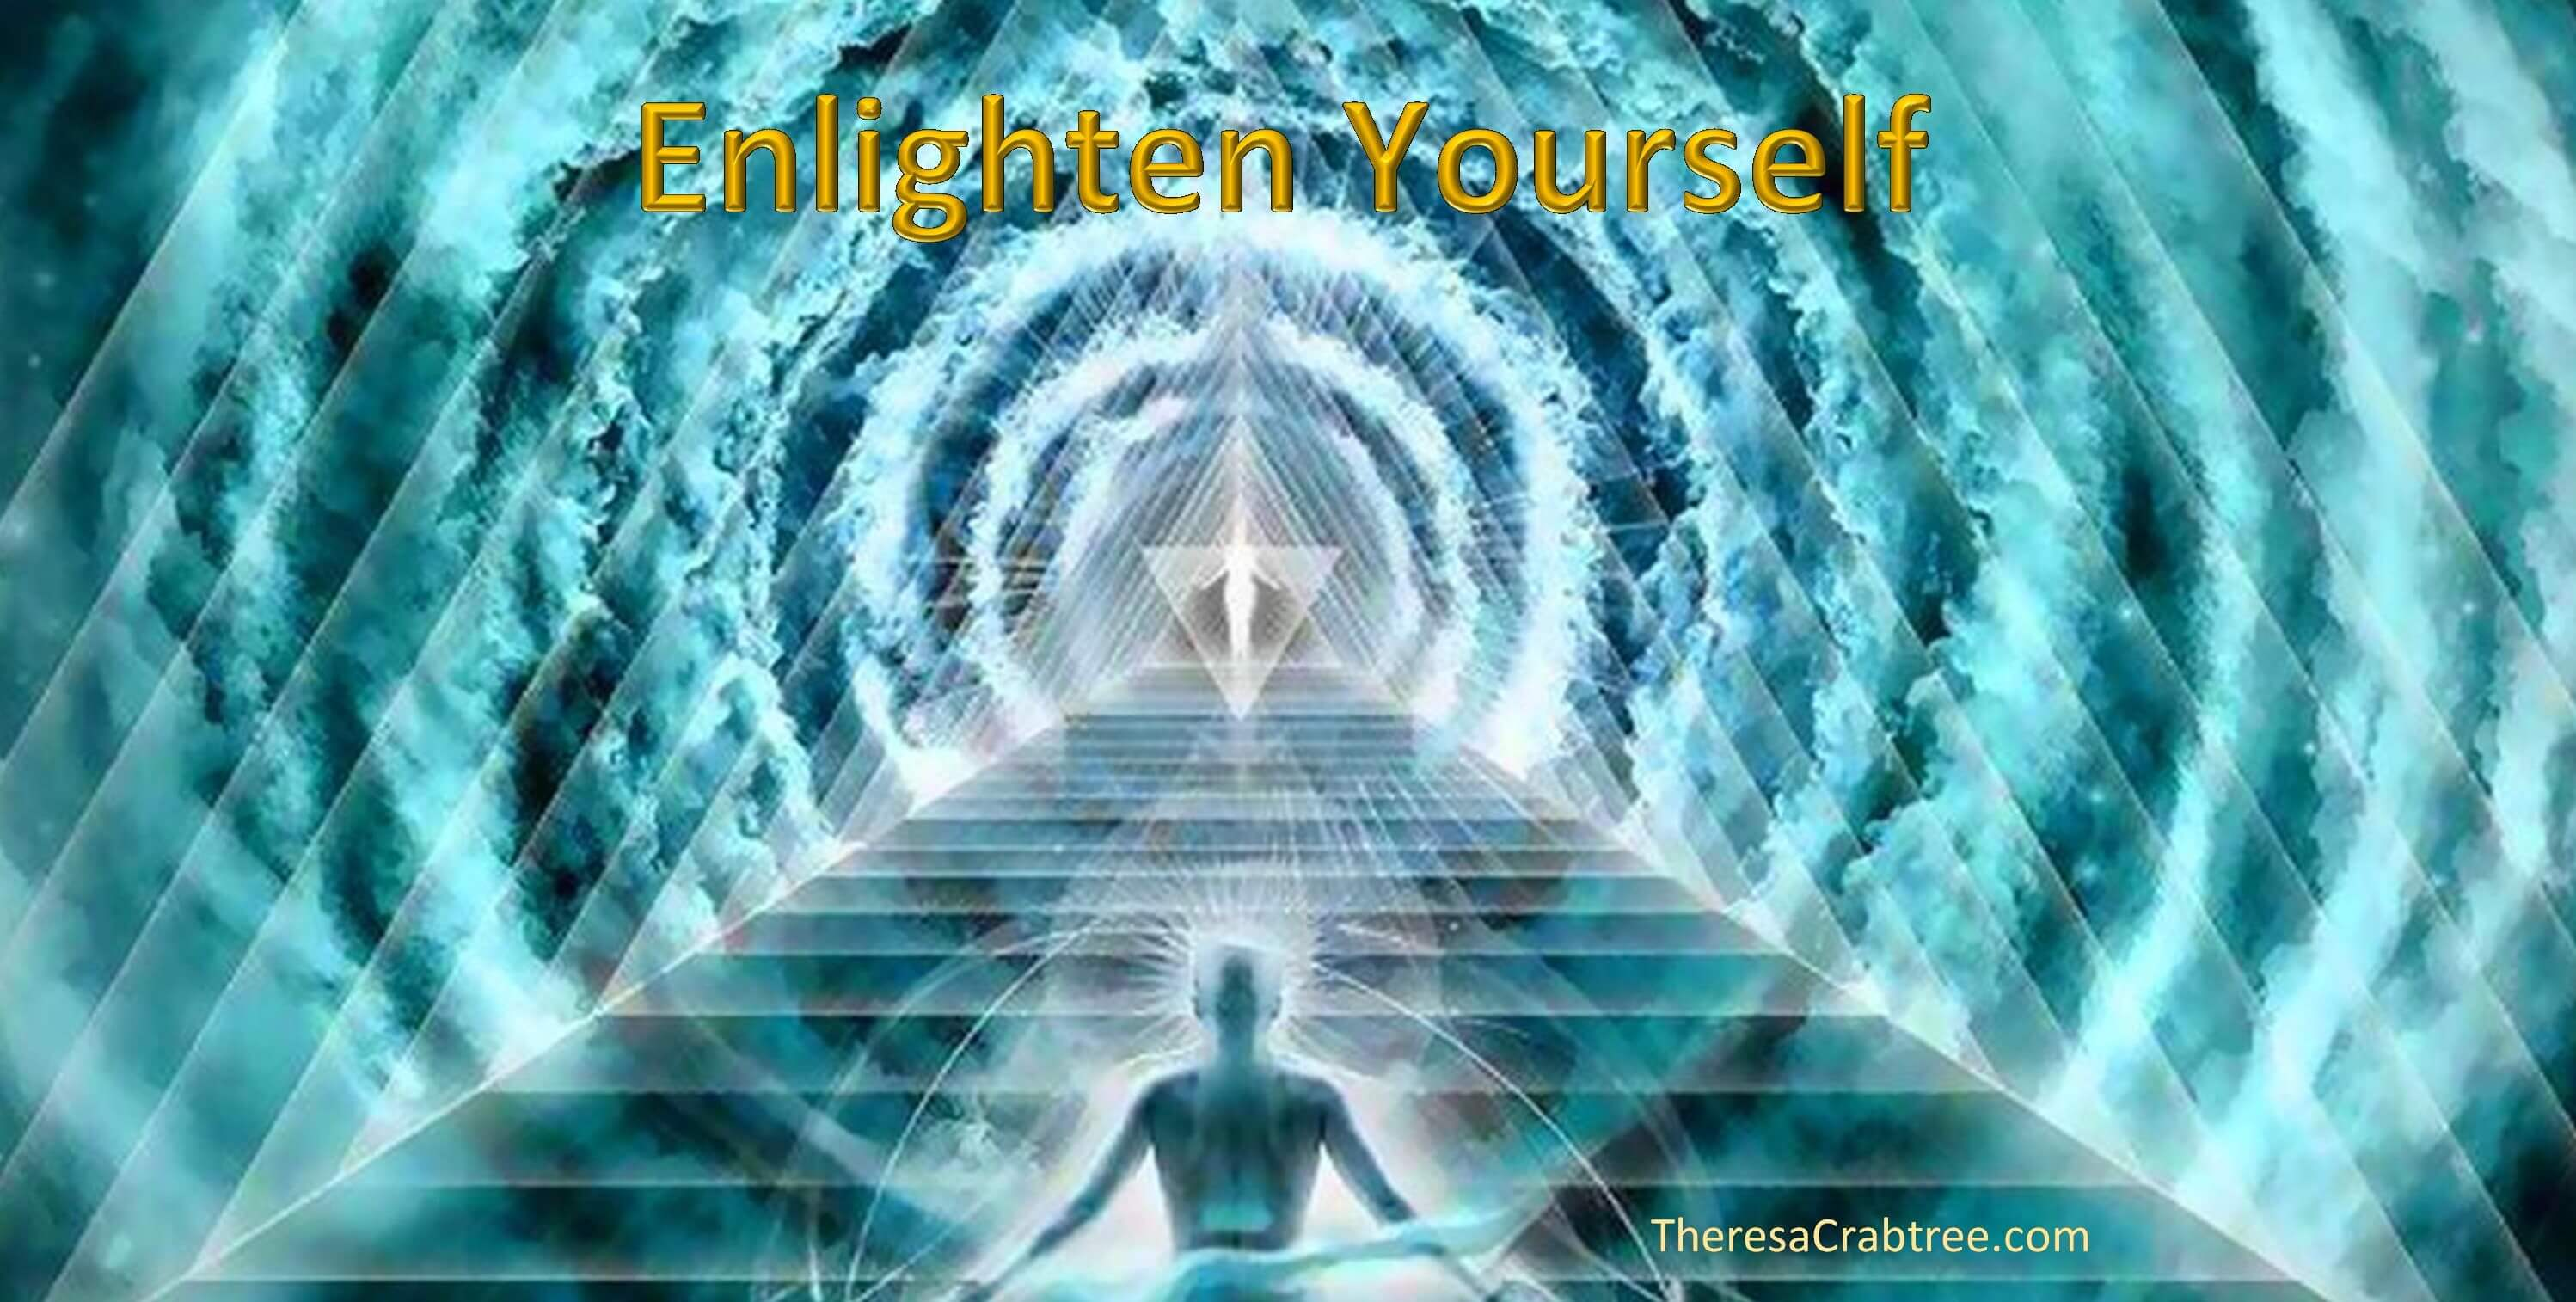 Enlighten Yourself